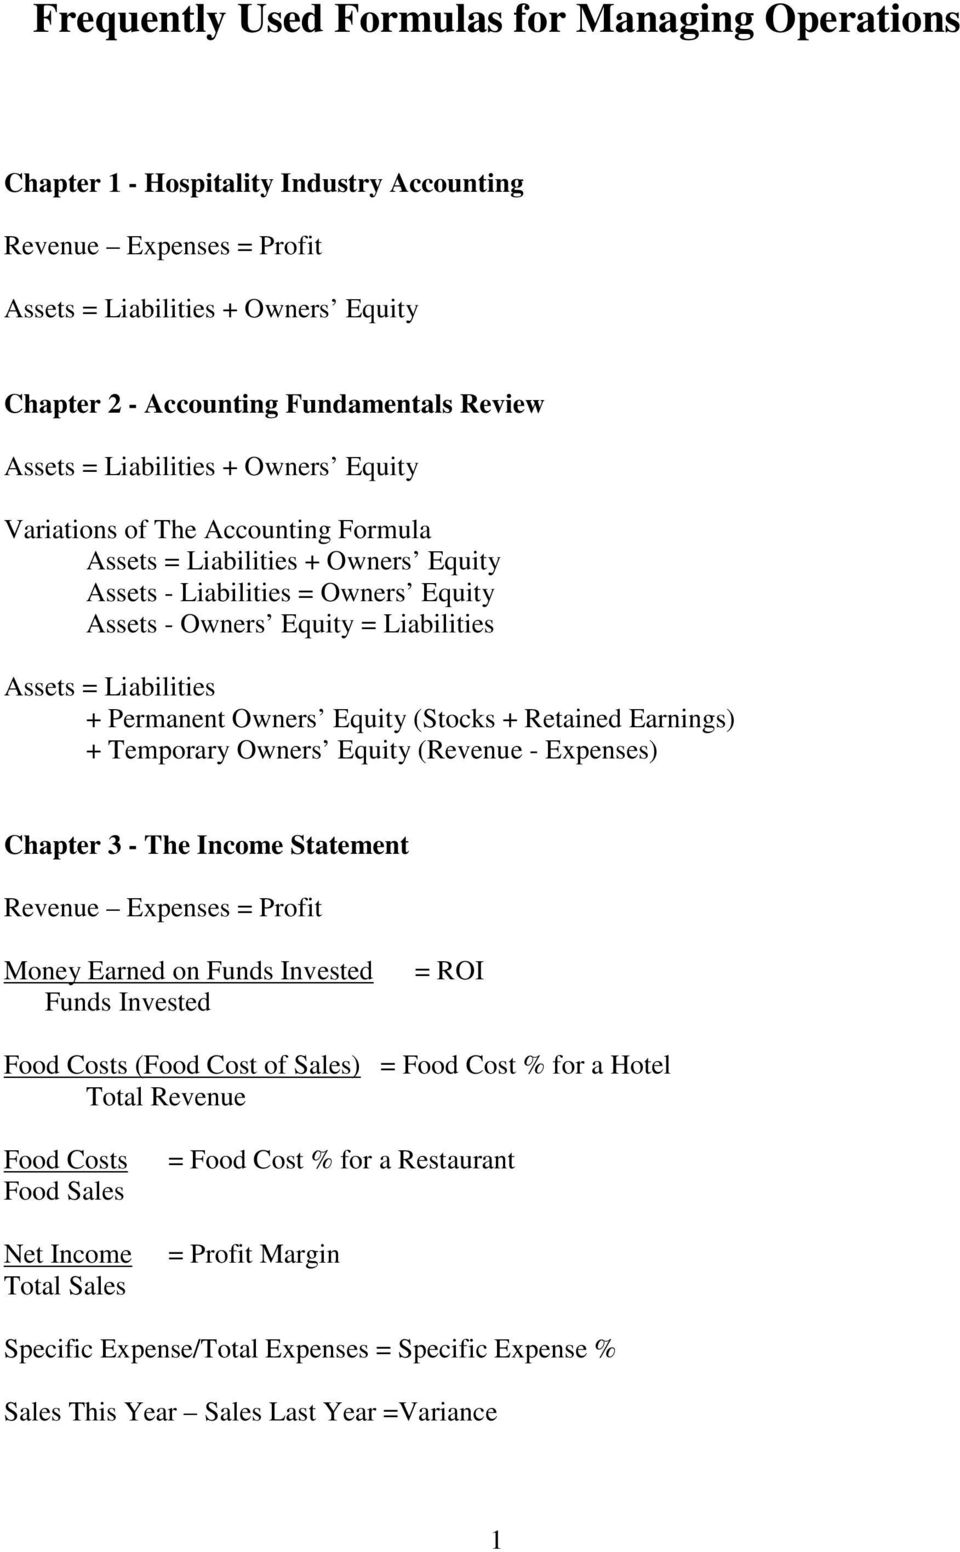 Liabilities + Permanent Owners Equity (Stocks + Retained Earnings) + Temporary Owners Equity (Revenue - Expenses) Chapter 3 - The Income Statement Revenue Expenses = Profit Money Earned on Funds